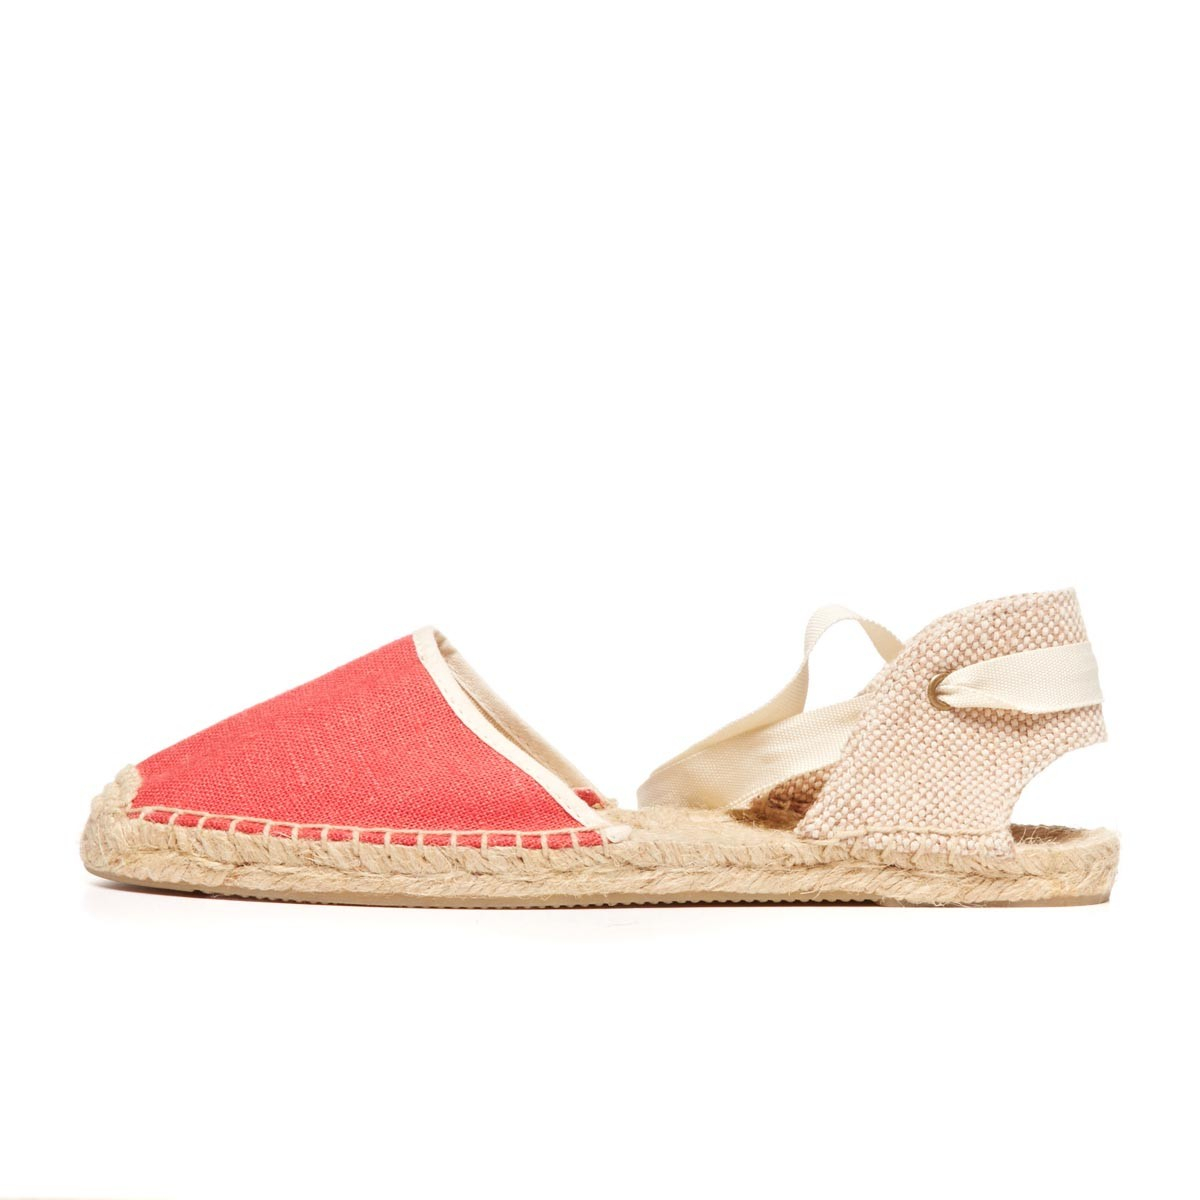 Soludos Knobby Linen Sandal in Pink - Lyst